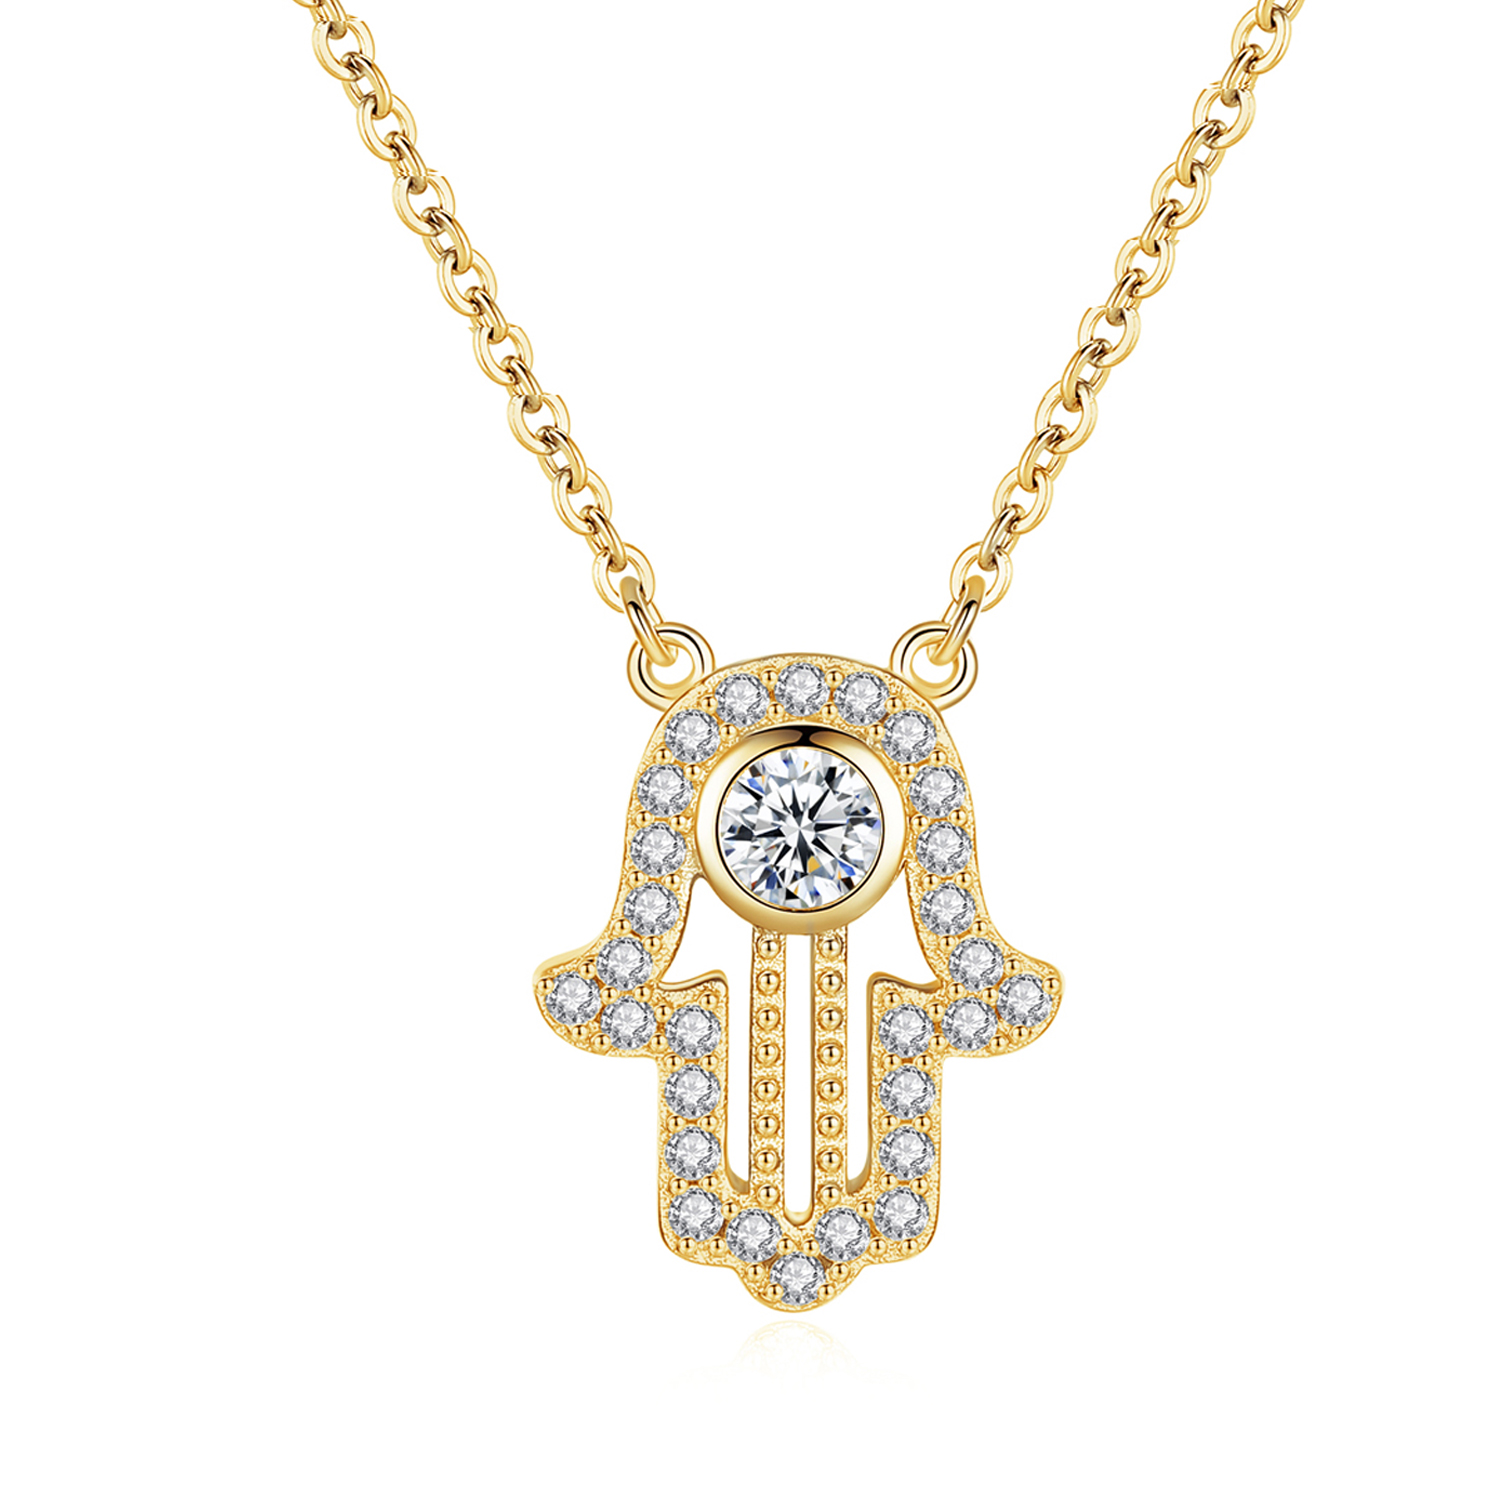 Image 2 - TONGZHE 925 sterling Silver Hand Hamsa Necklace Women Lucky Fatima Link Chain Long Initial Necklace Turkey Jewelry 2019 Choker-in Pendant Necklaces from Jewelry & Accessories